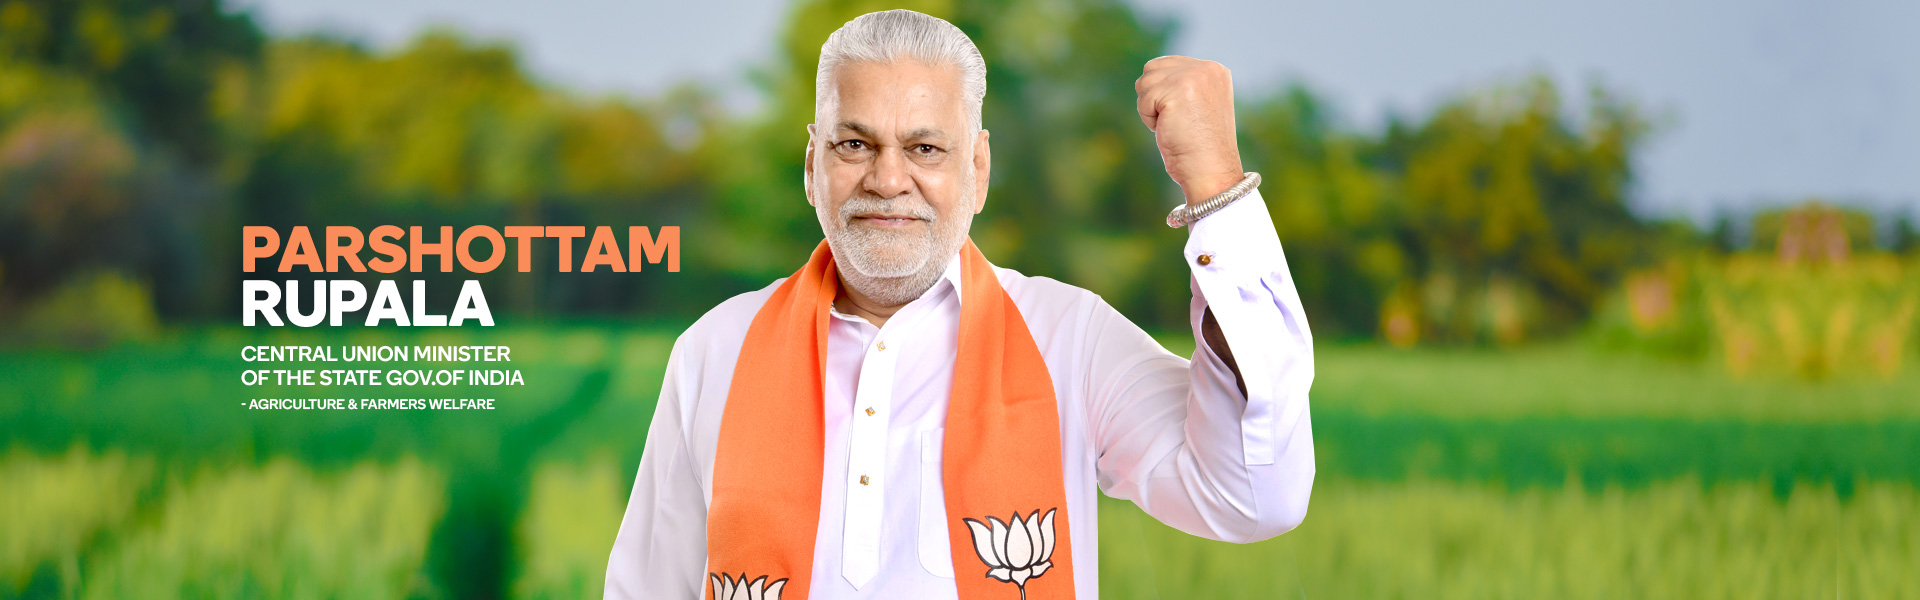 Parshottam Rupala Central Union Minister of the State Gov.Of India - Agriculture & Farmers Welfare